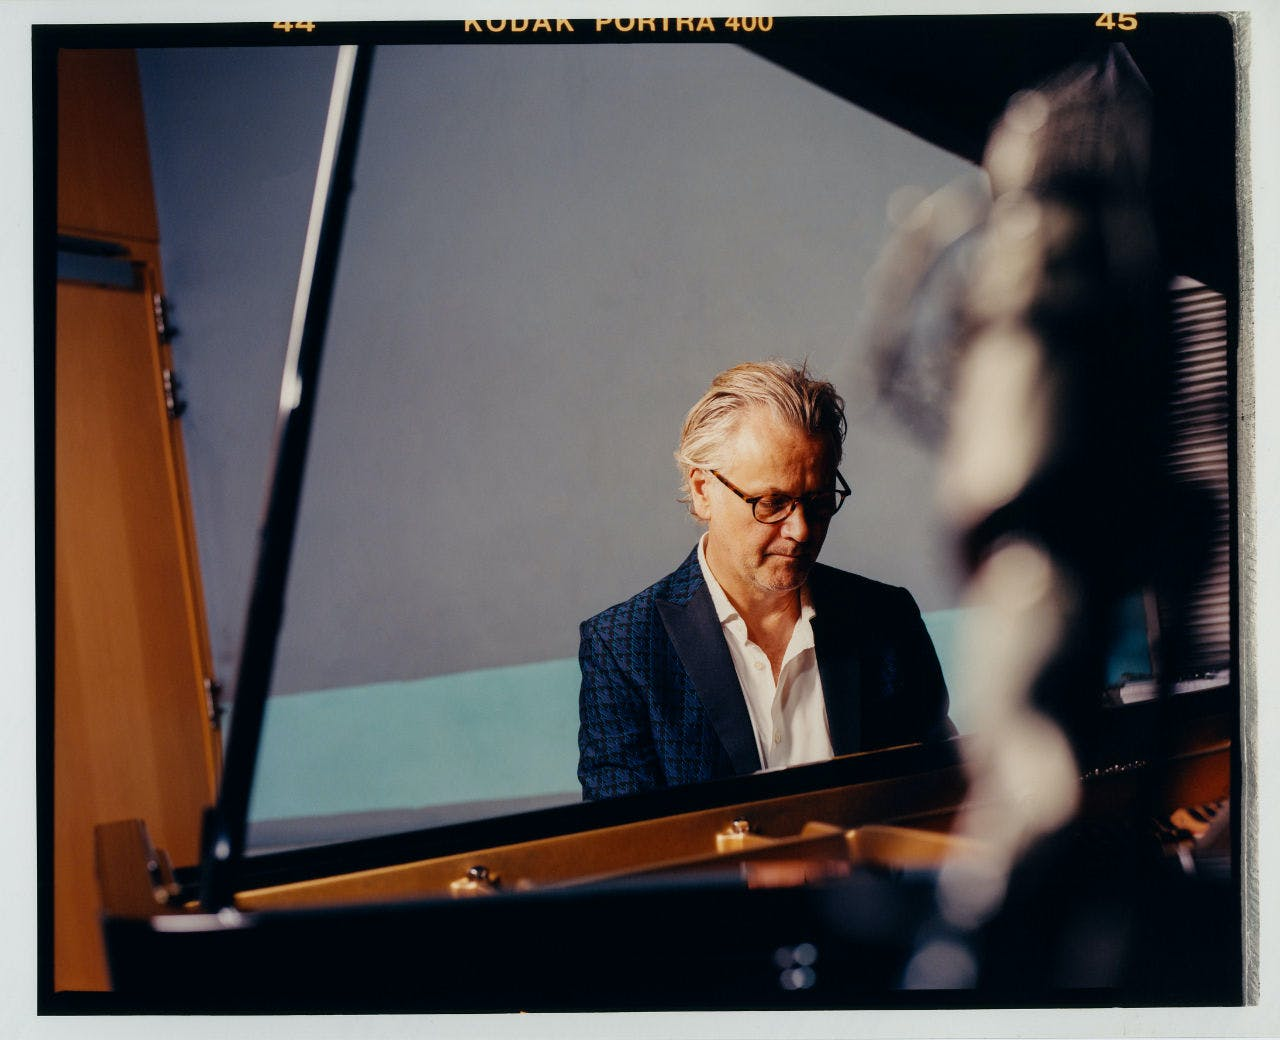 Guy Chambers Playing the Piano